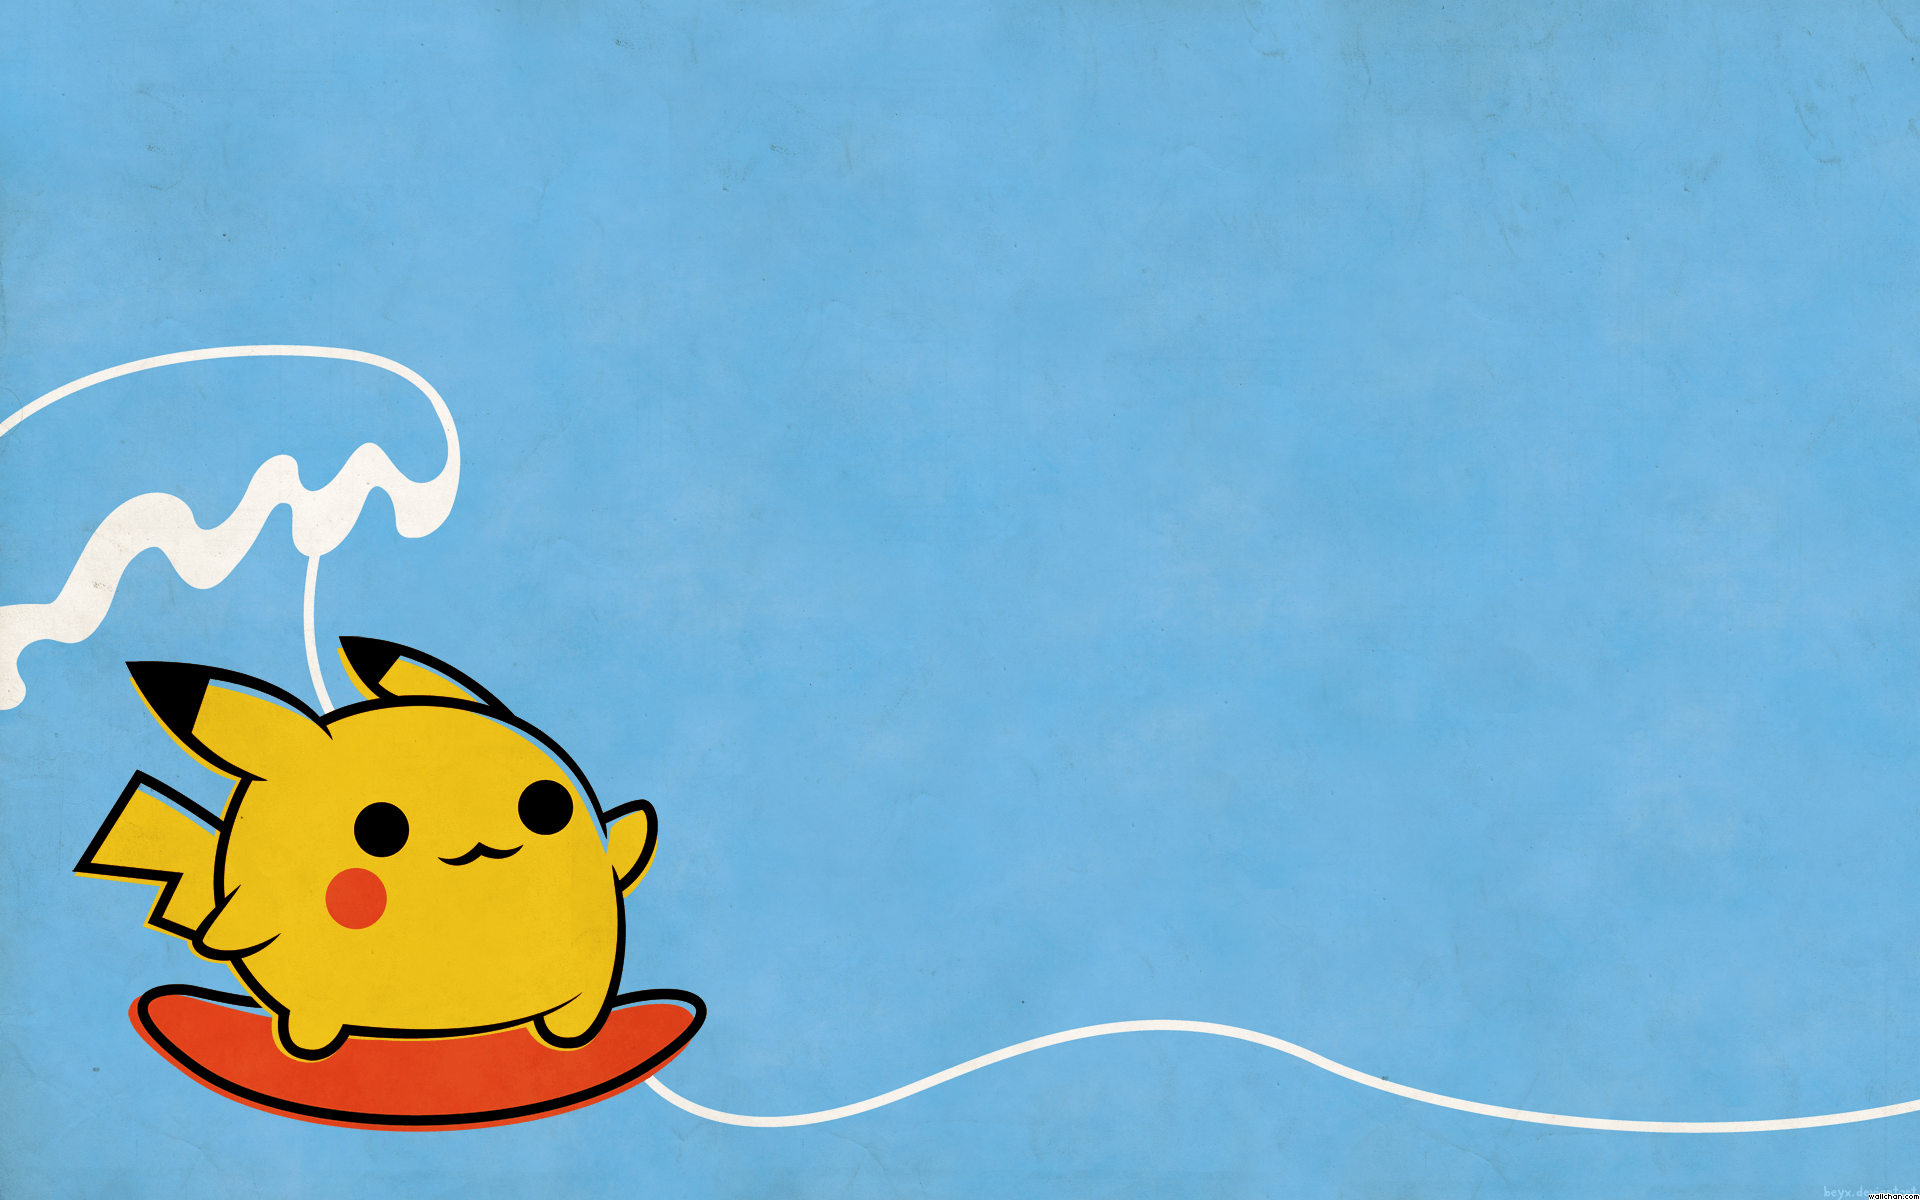 Cute Computer Wallpapers - Top Free